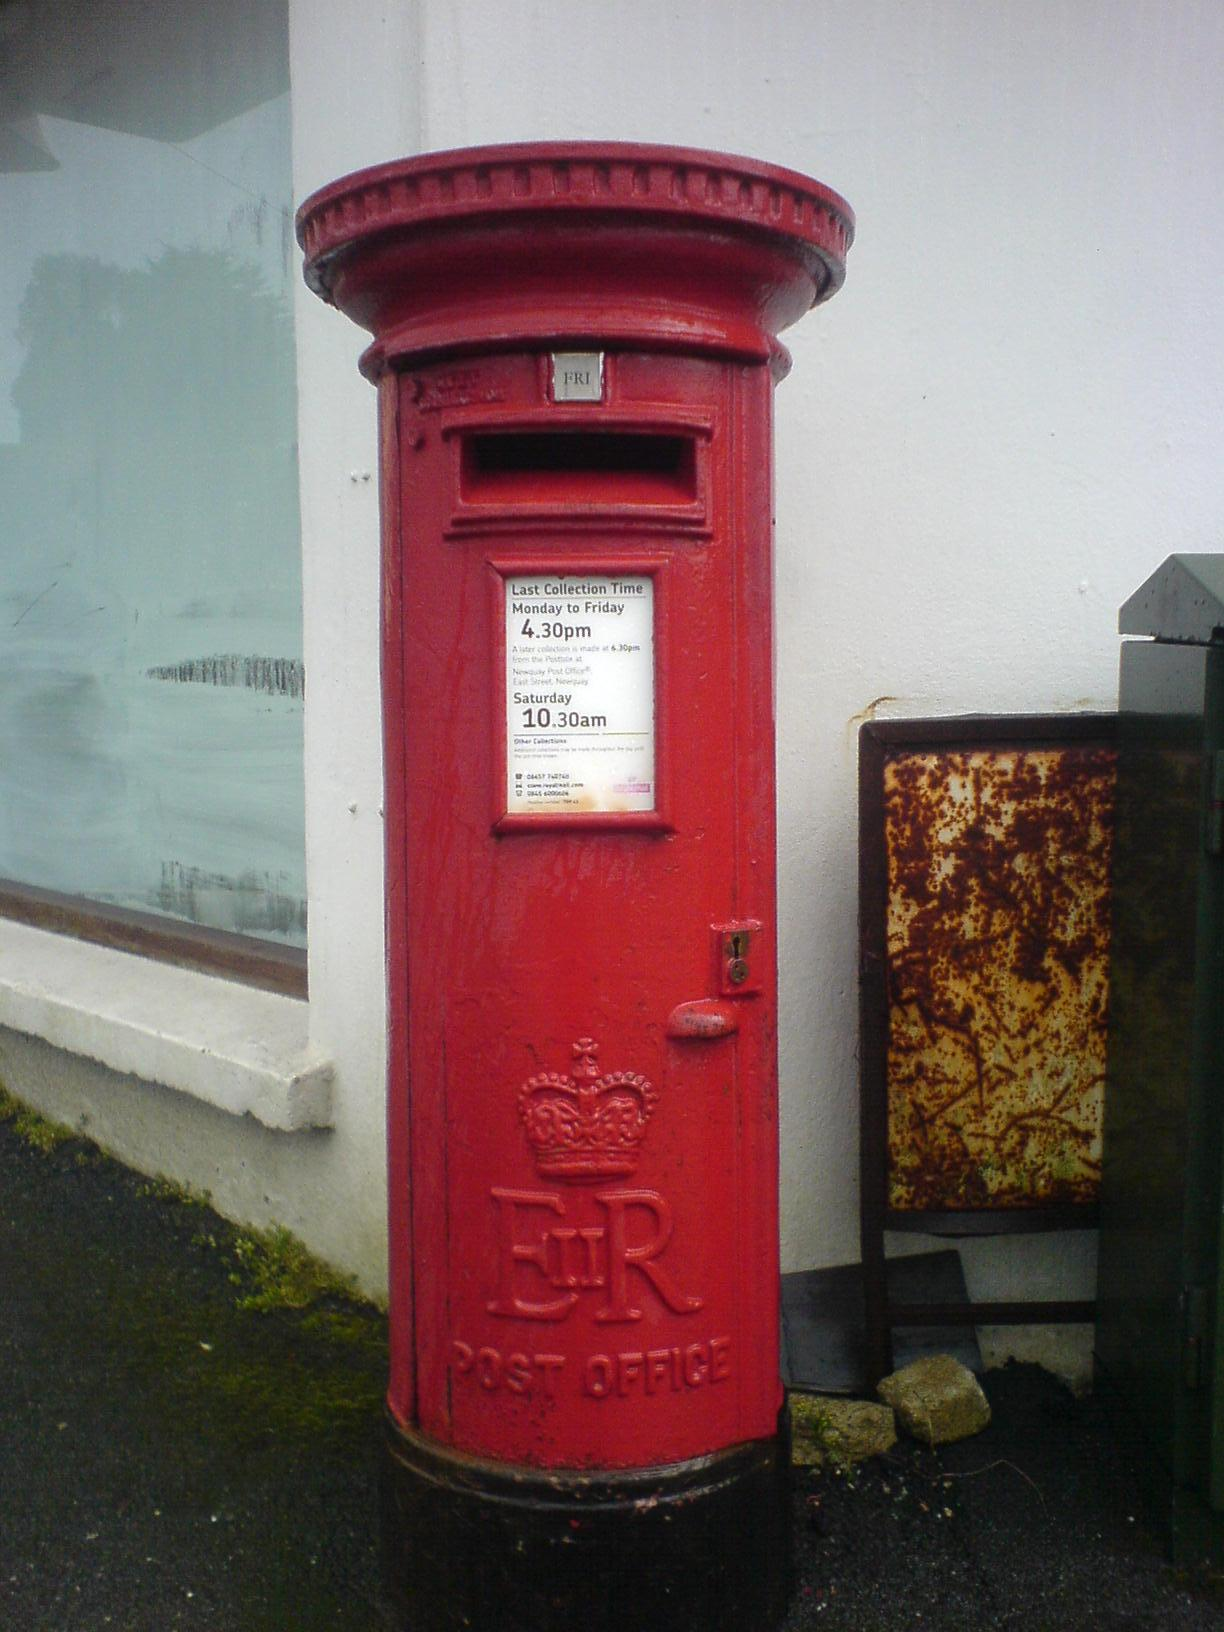 how to find a post office box